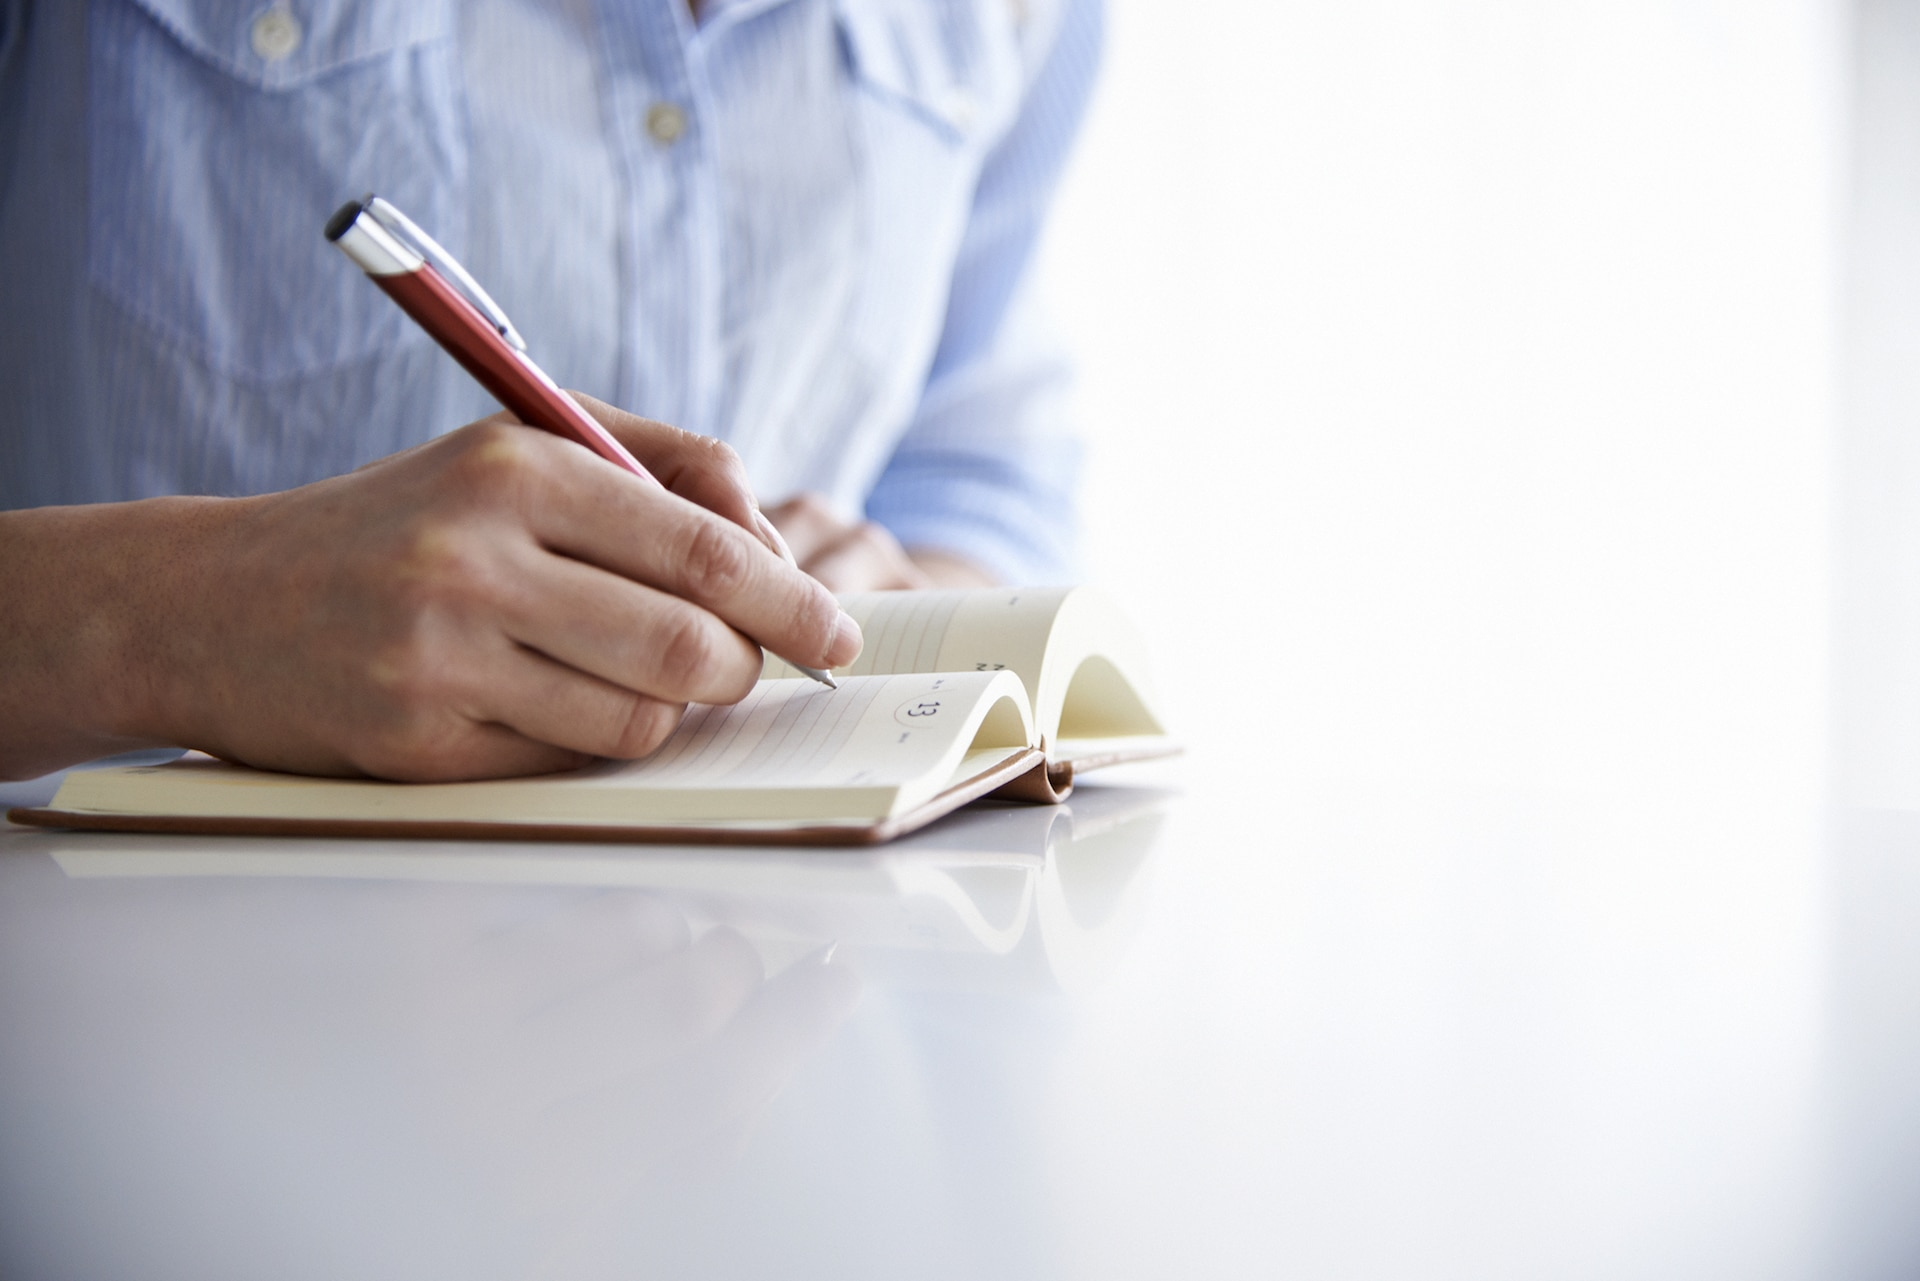 The 7 Benefits of Keeping a Daily Journal